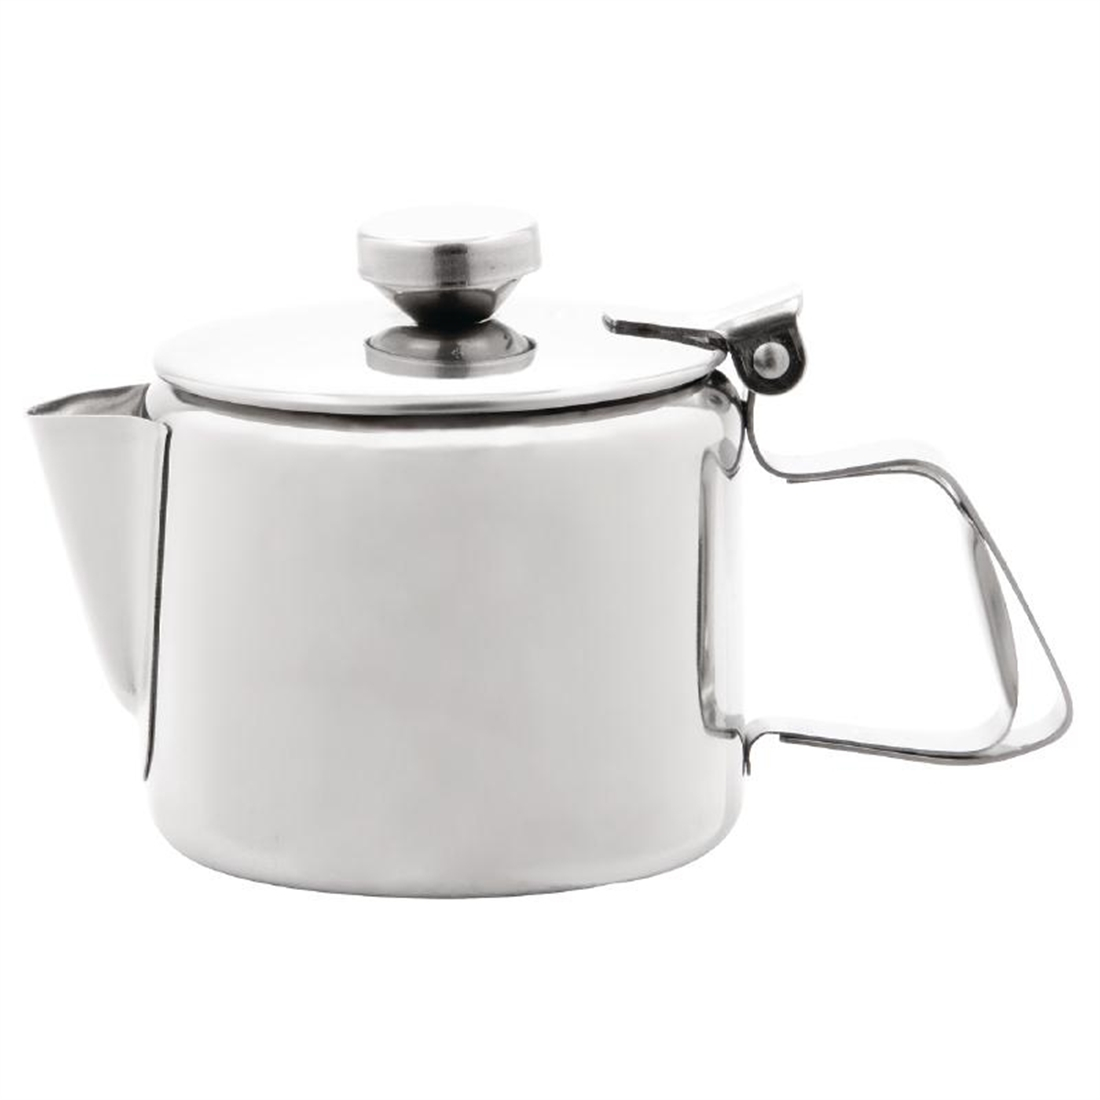 Olympia Concorde Tea Pot Stainless Steel 12oz